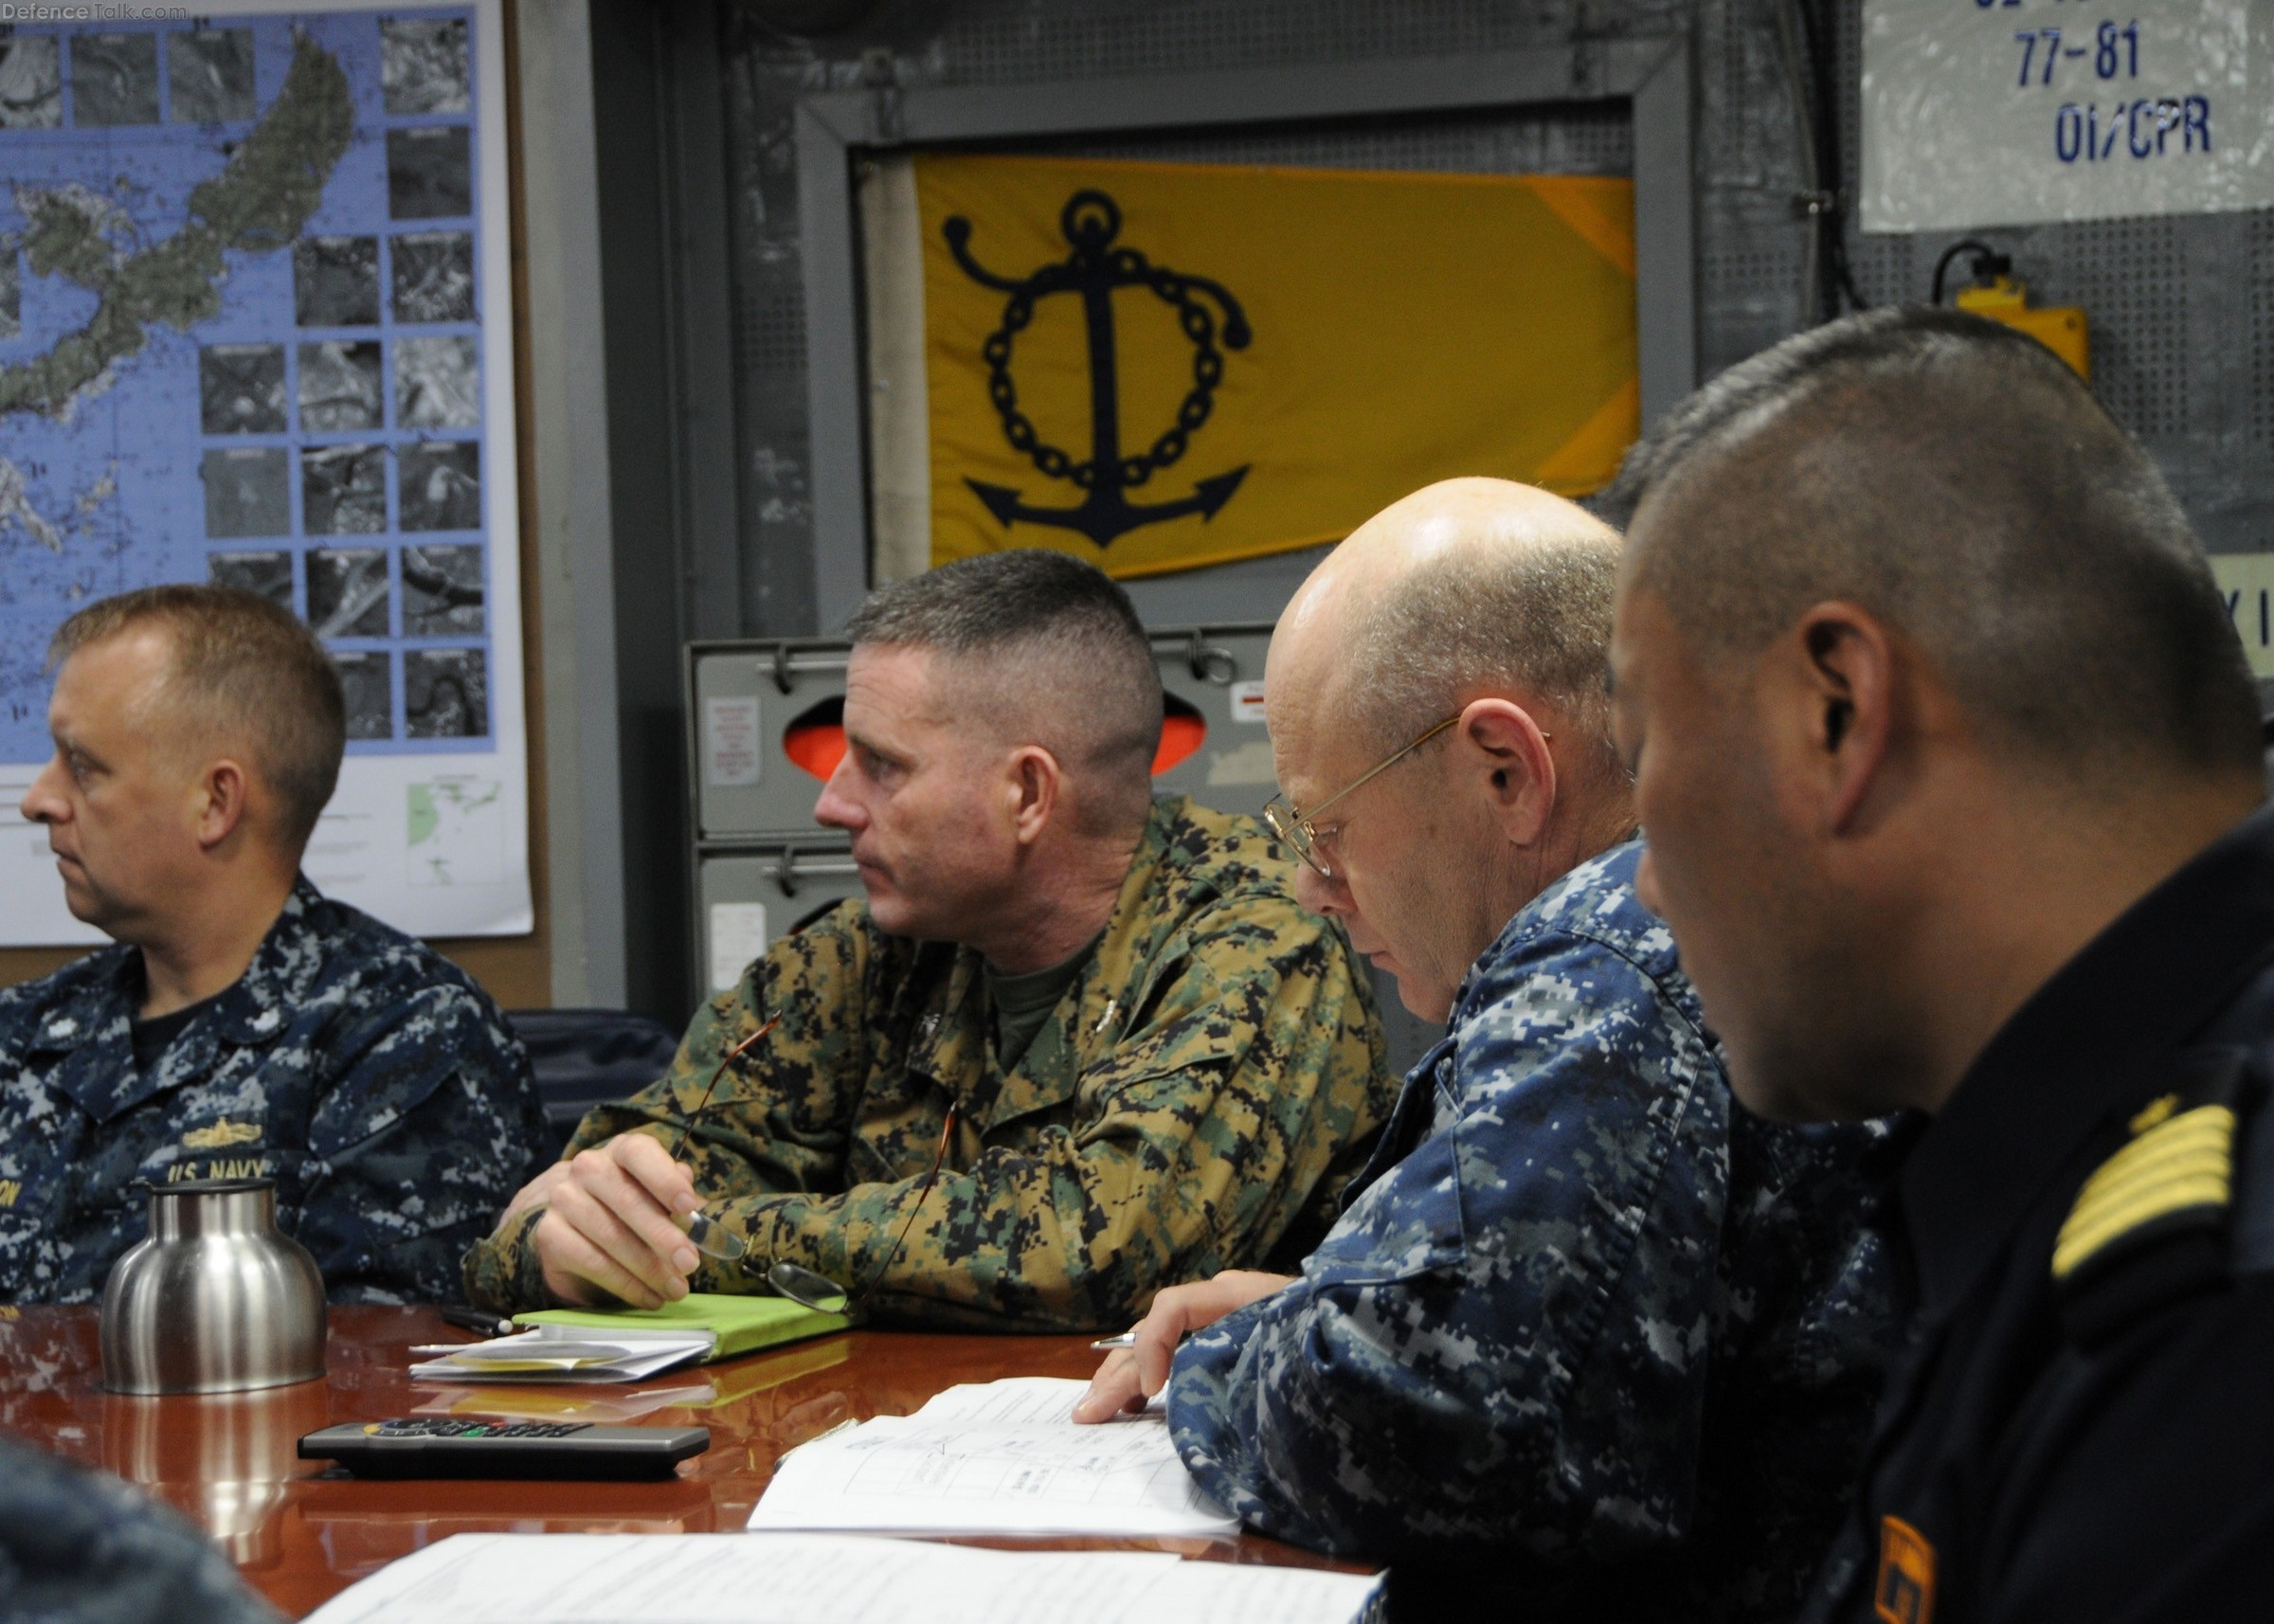 Senior leadership from the USN, Marines